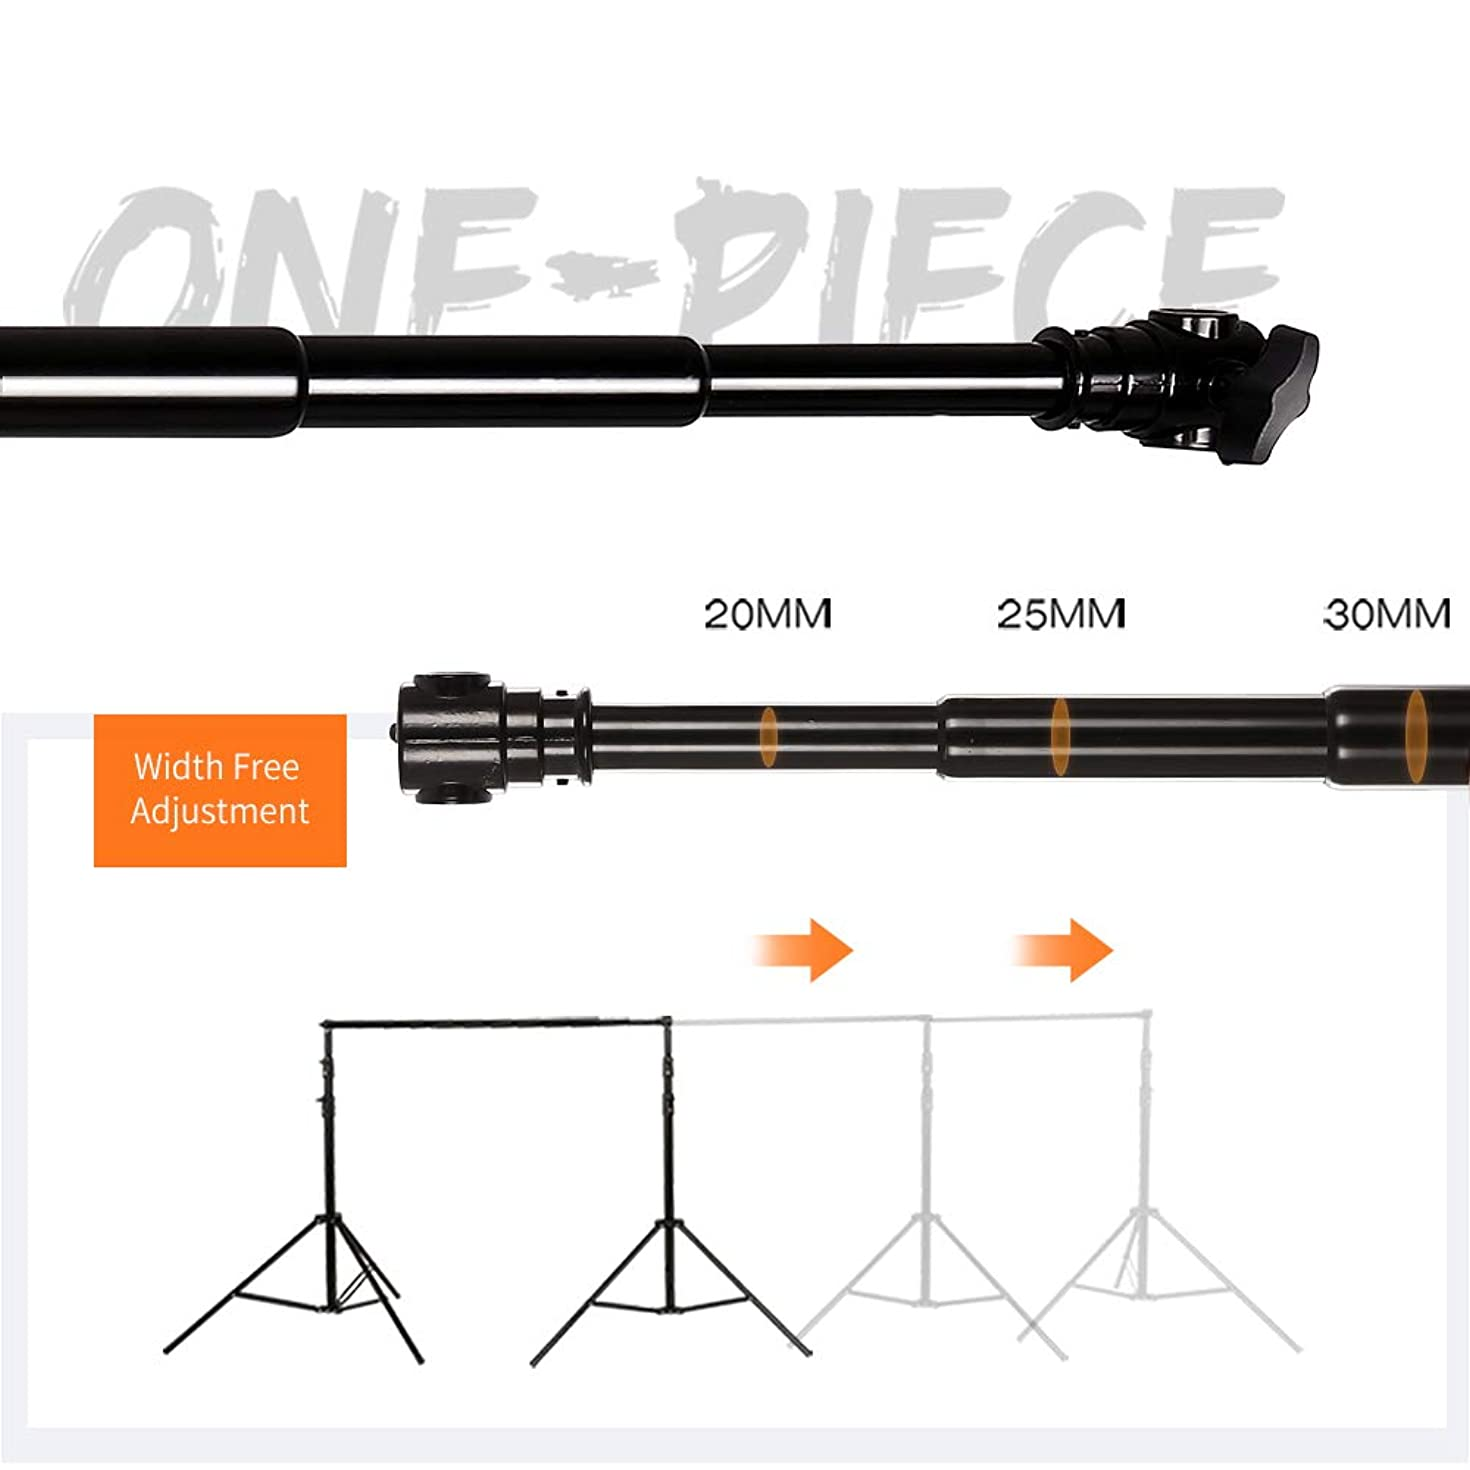 SH Telescopic Tube Background Support Pole and Stand, 9 x 10FT Heavy Duty Background Stand Backdrop Support System Kit with Carry Bag for Photography Photo Video Studio